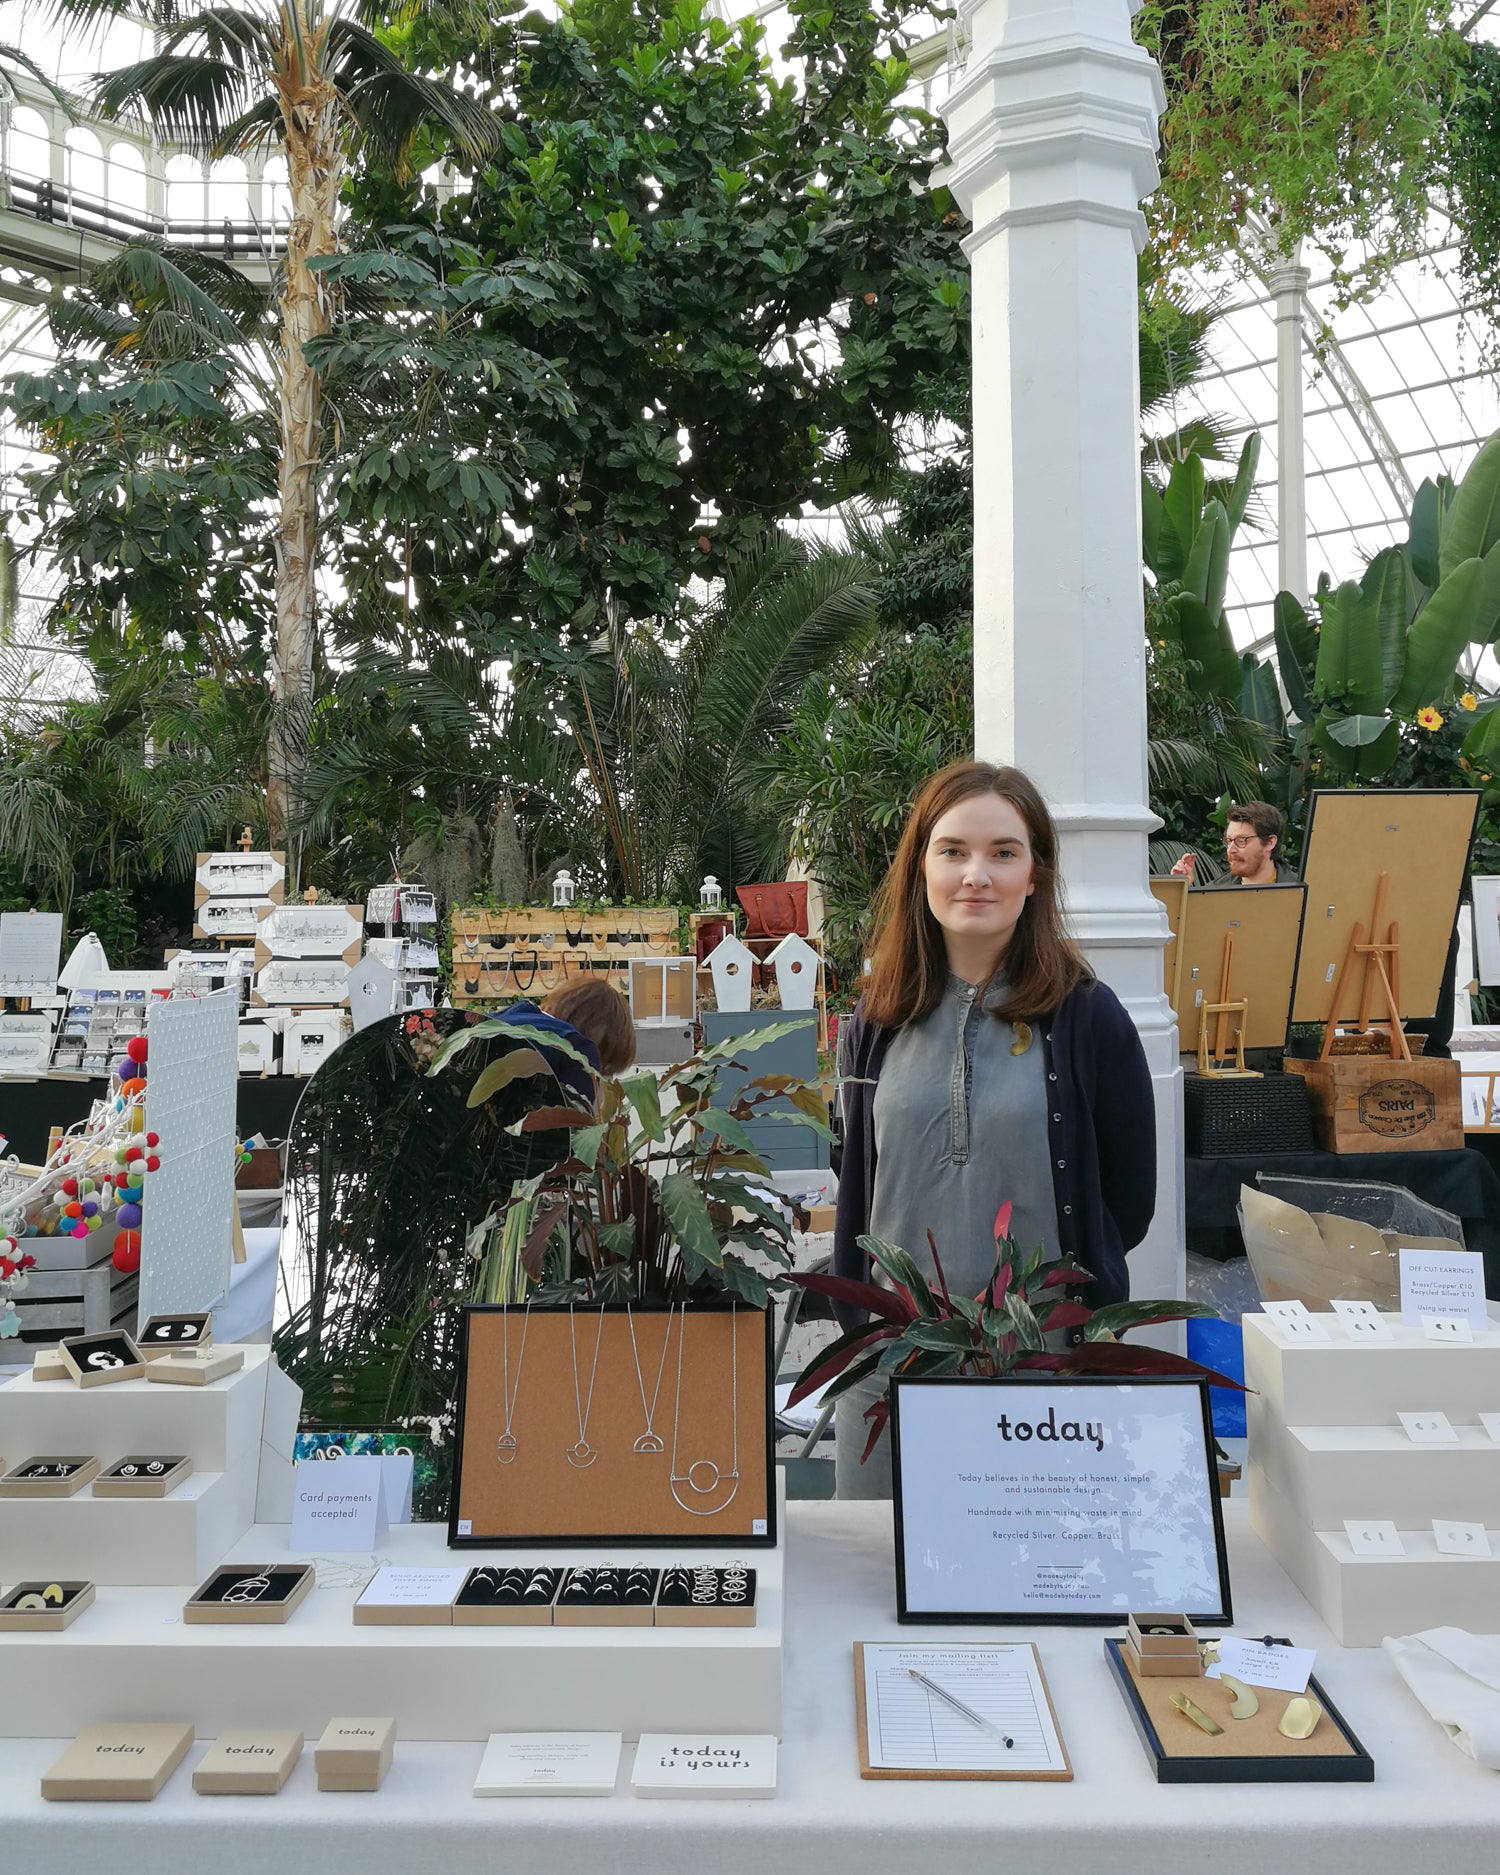 Today jewellery craft fair set-up at Pop-Up in the Palm House Liverpool